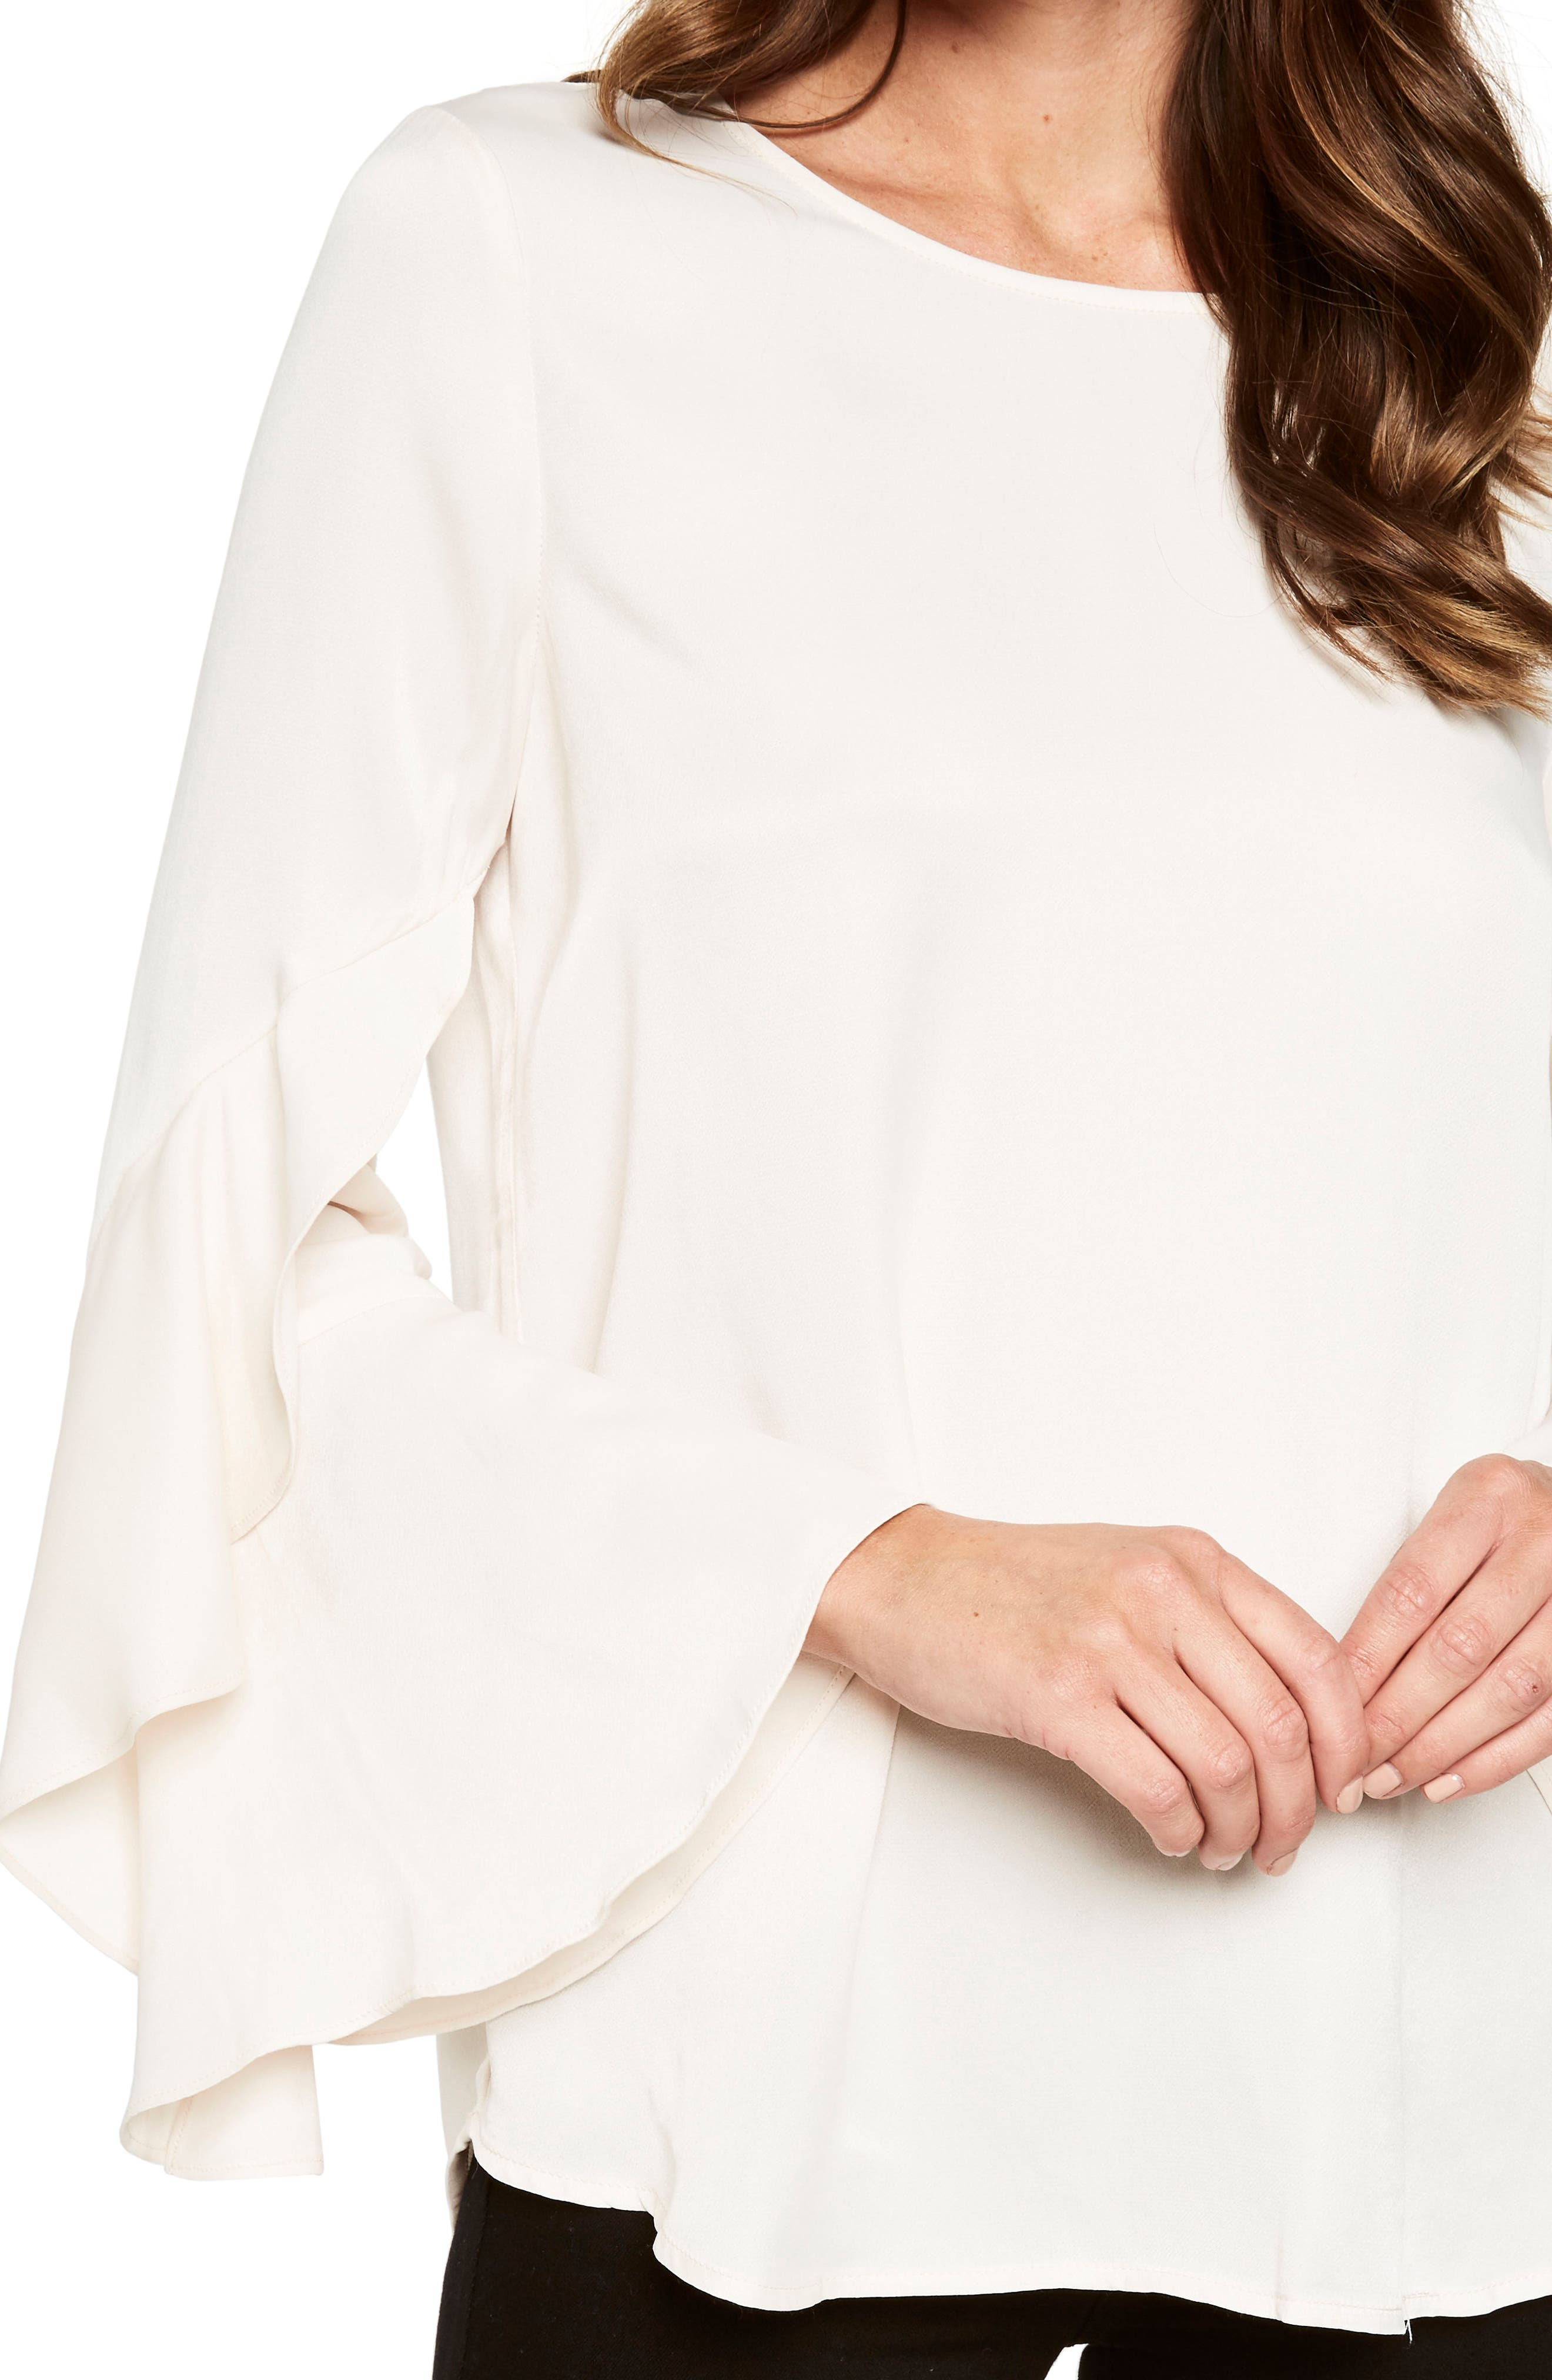 Bell Sleeve Top,                             Alternate thumbnail 4, color,                             650